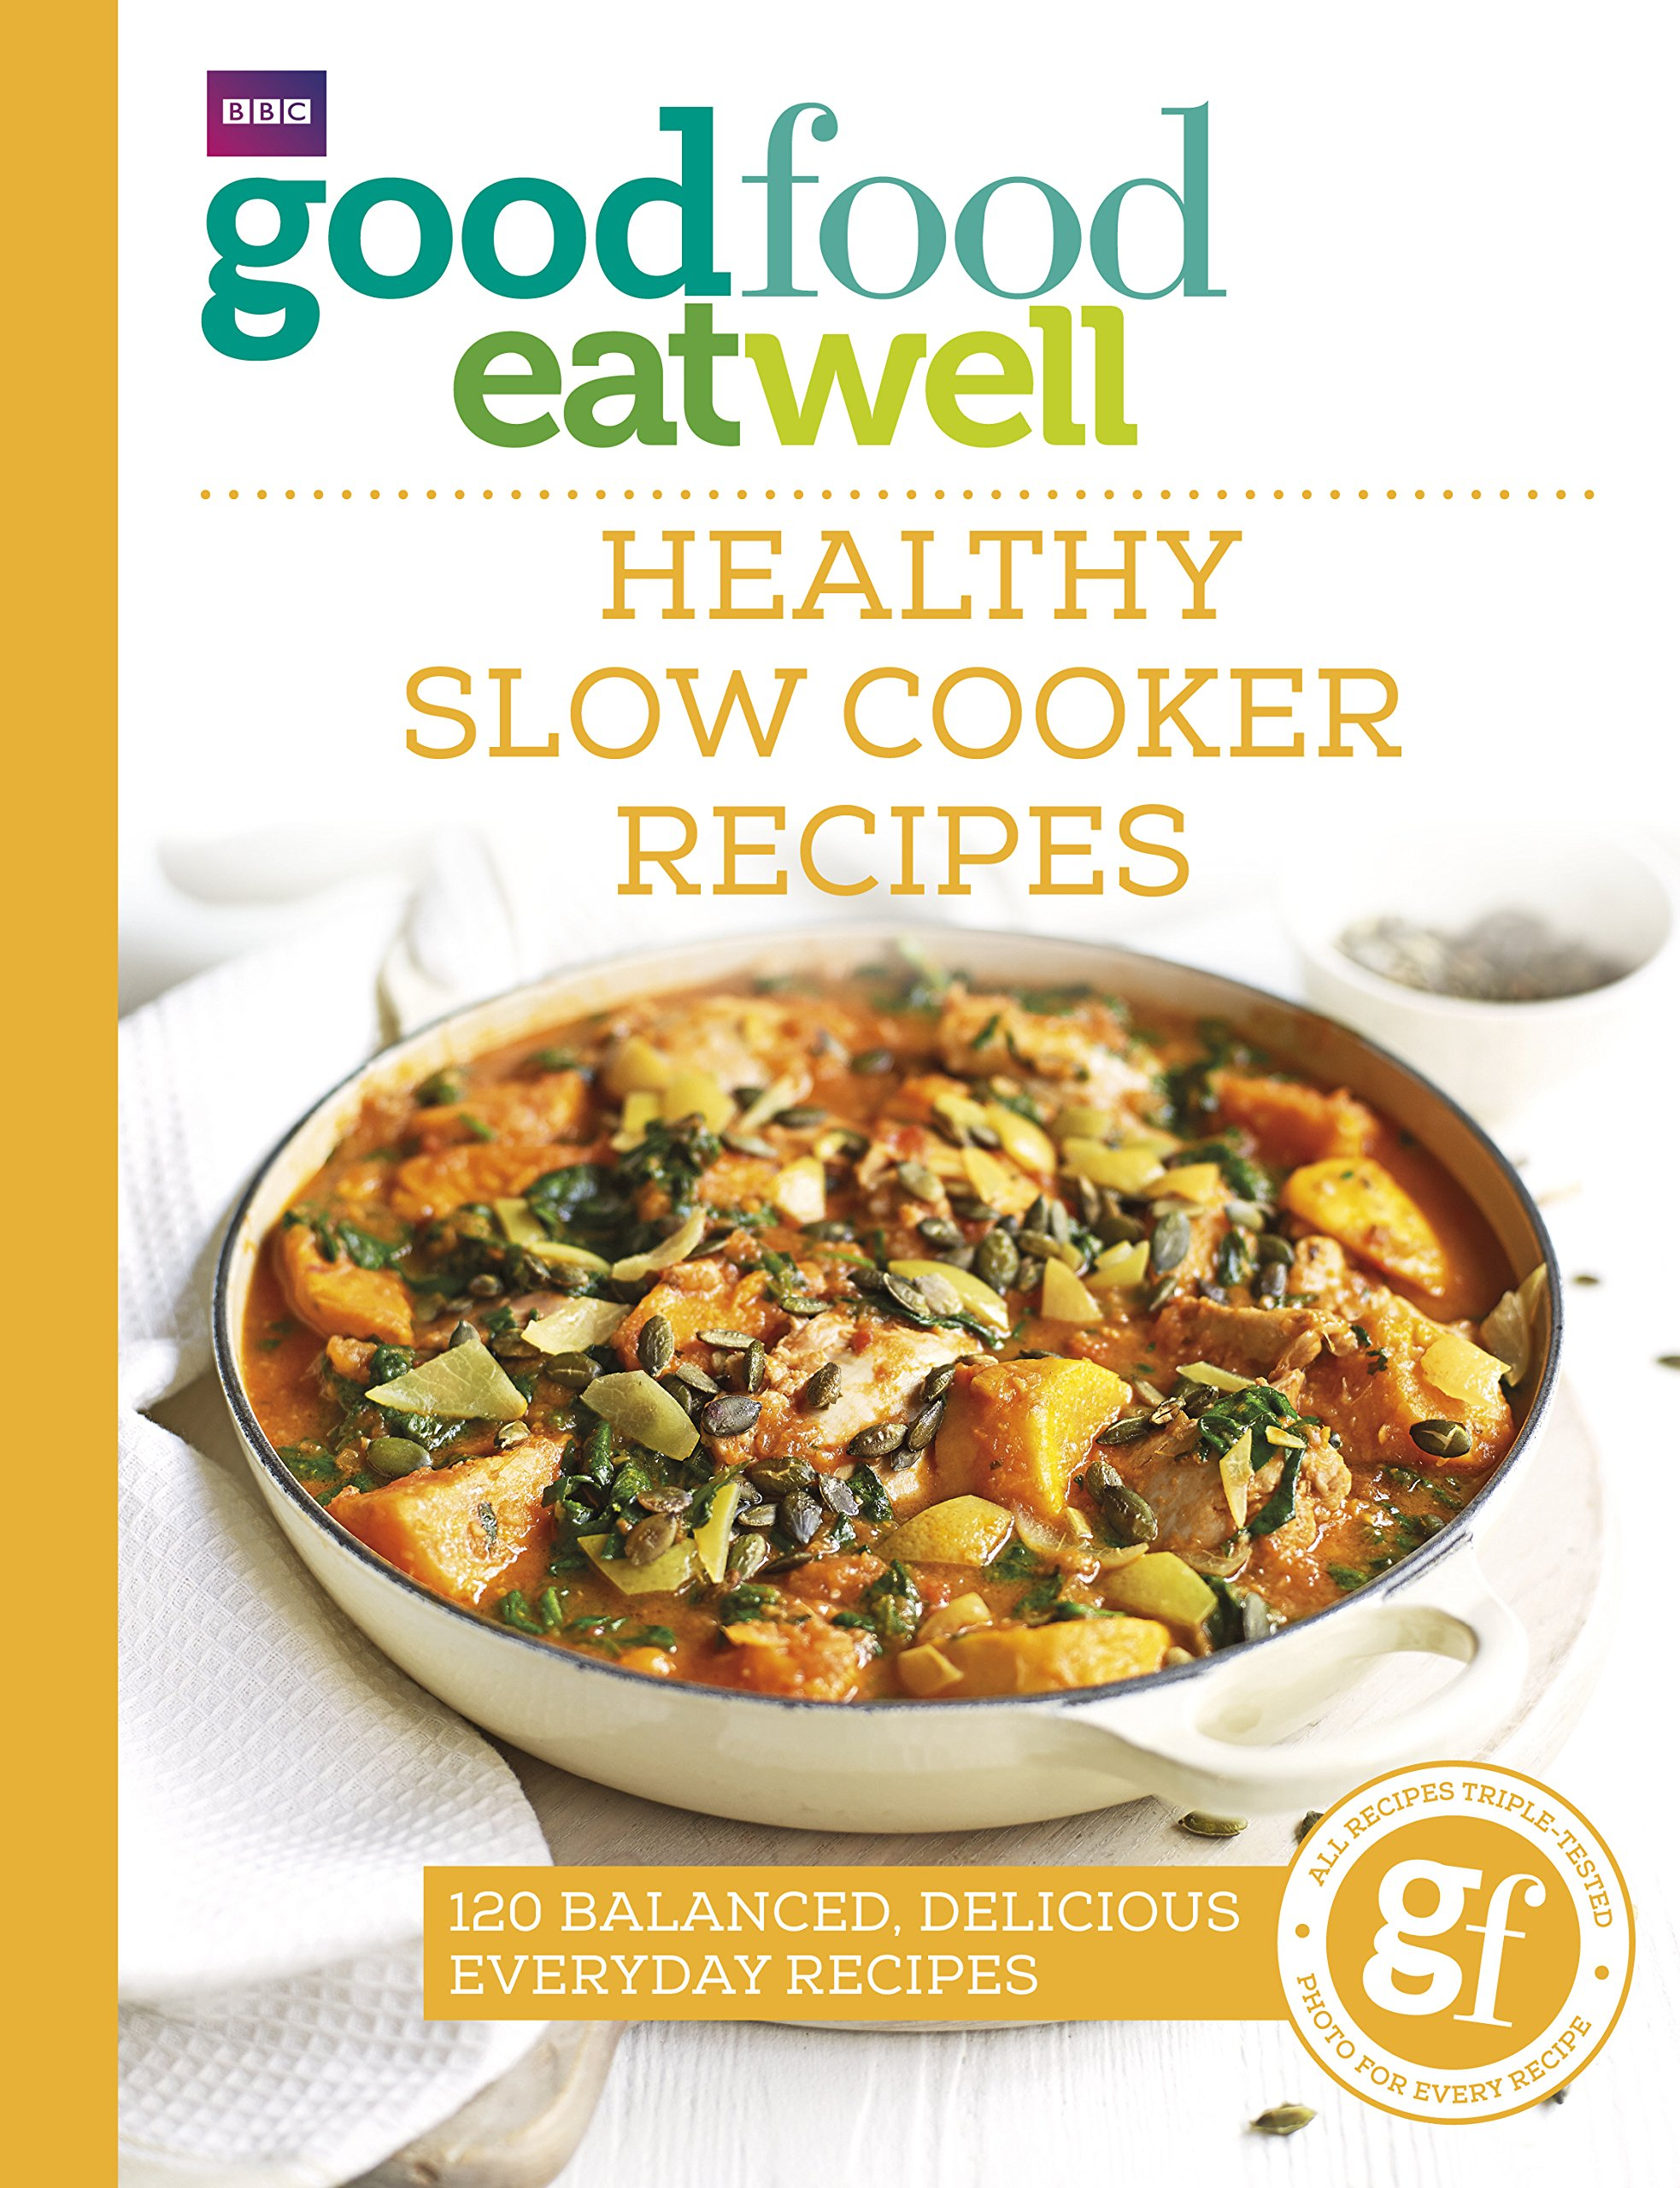 Good food eat well healthy slow cooker recipes amazon good good food eat well healthy slow cooker recipes amazon good food guides 9781785941986 books forumfinder Gallery